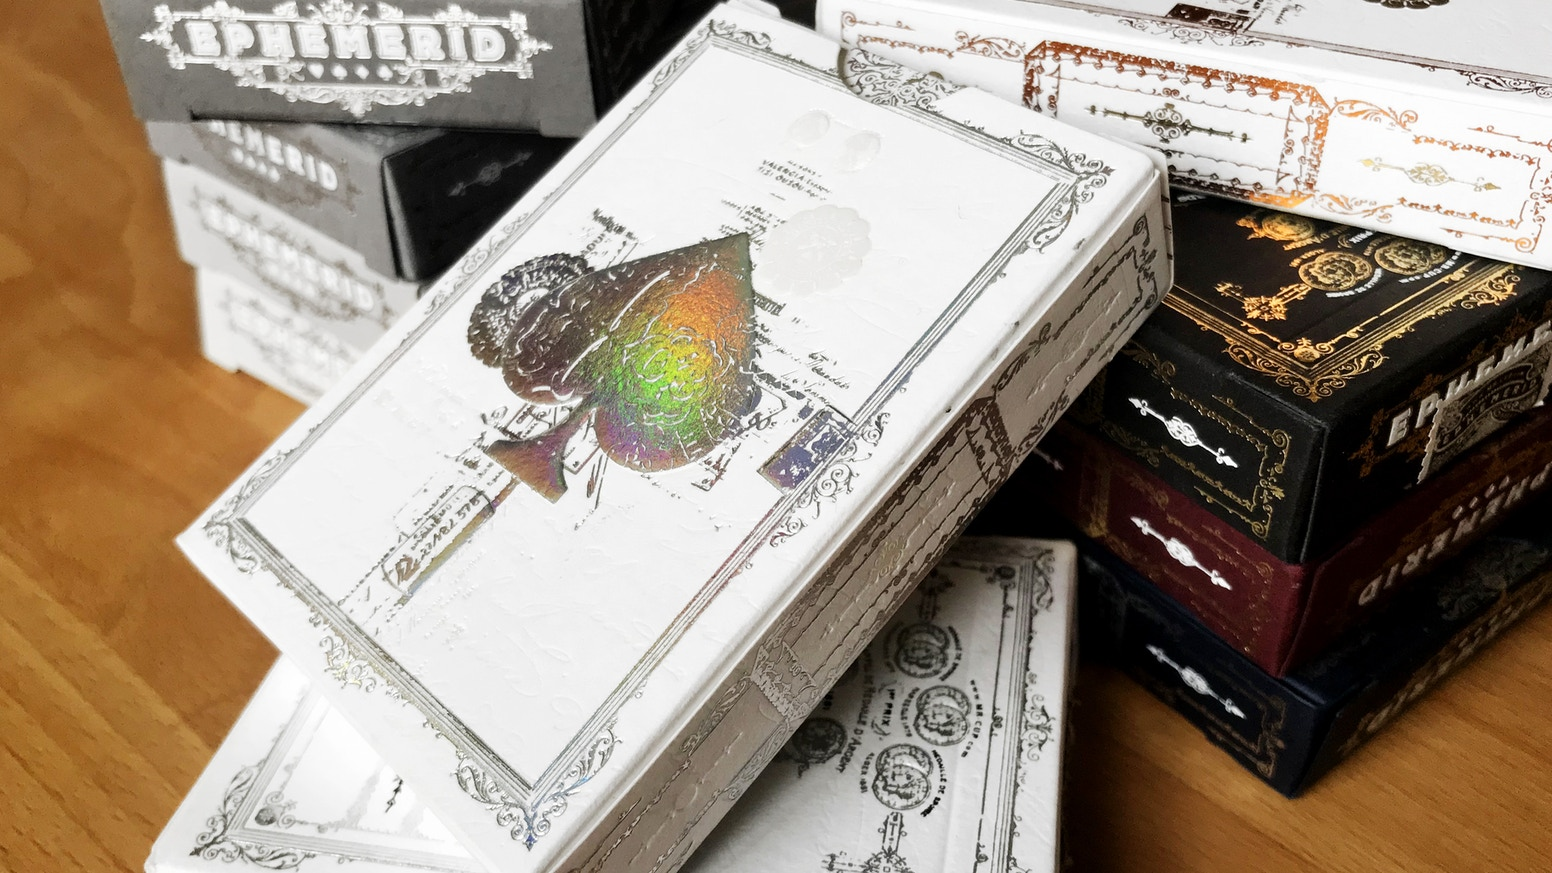 Following the success of the first 2 editions of the Ephemerid deck, here come super limited collector versions!